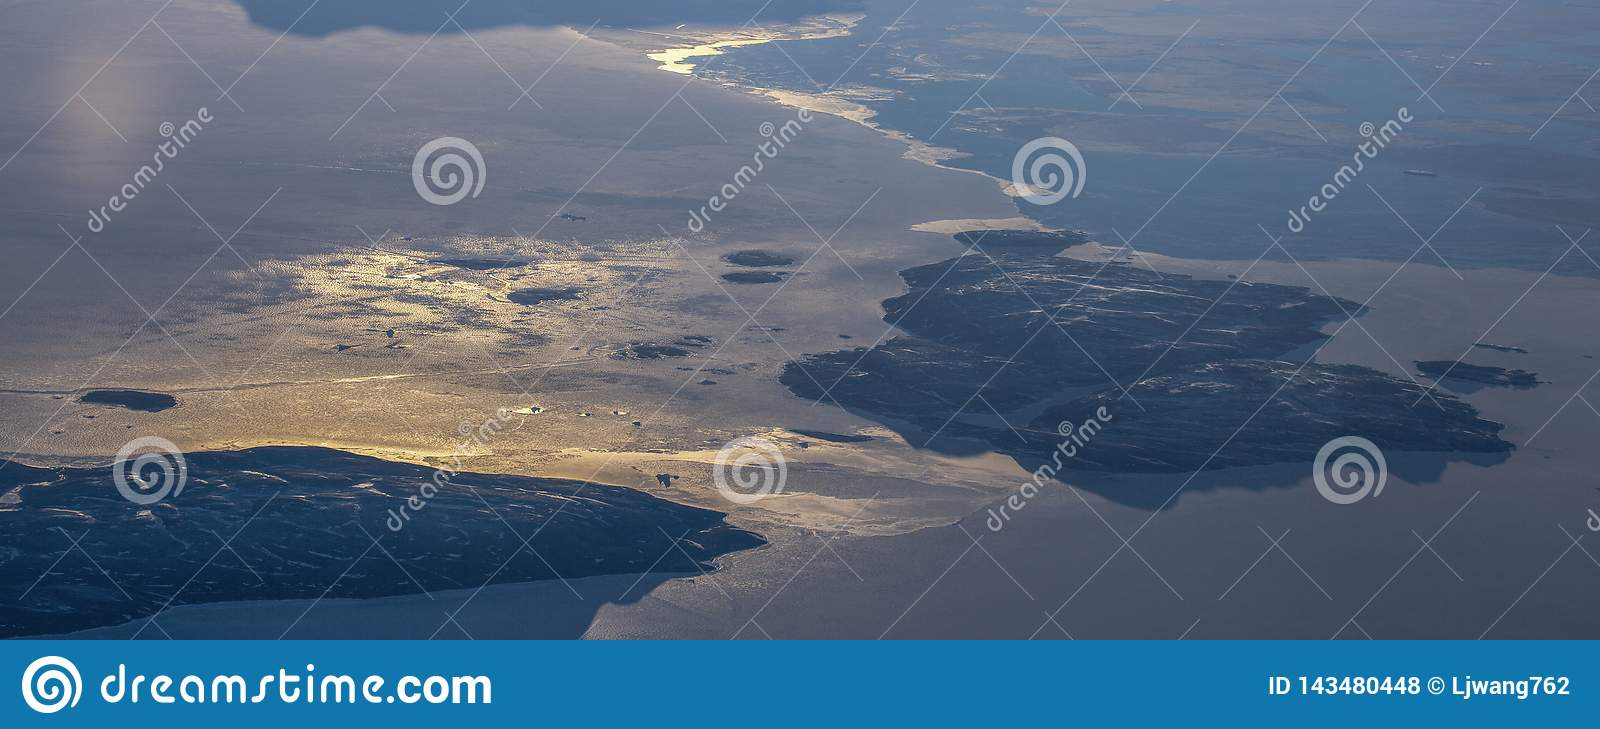 12Take an aerial view of the ice and sunrise over the bering strait.(1)